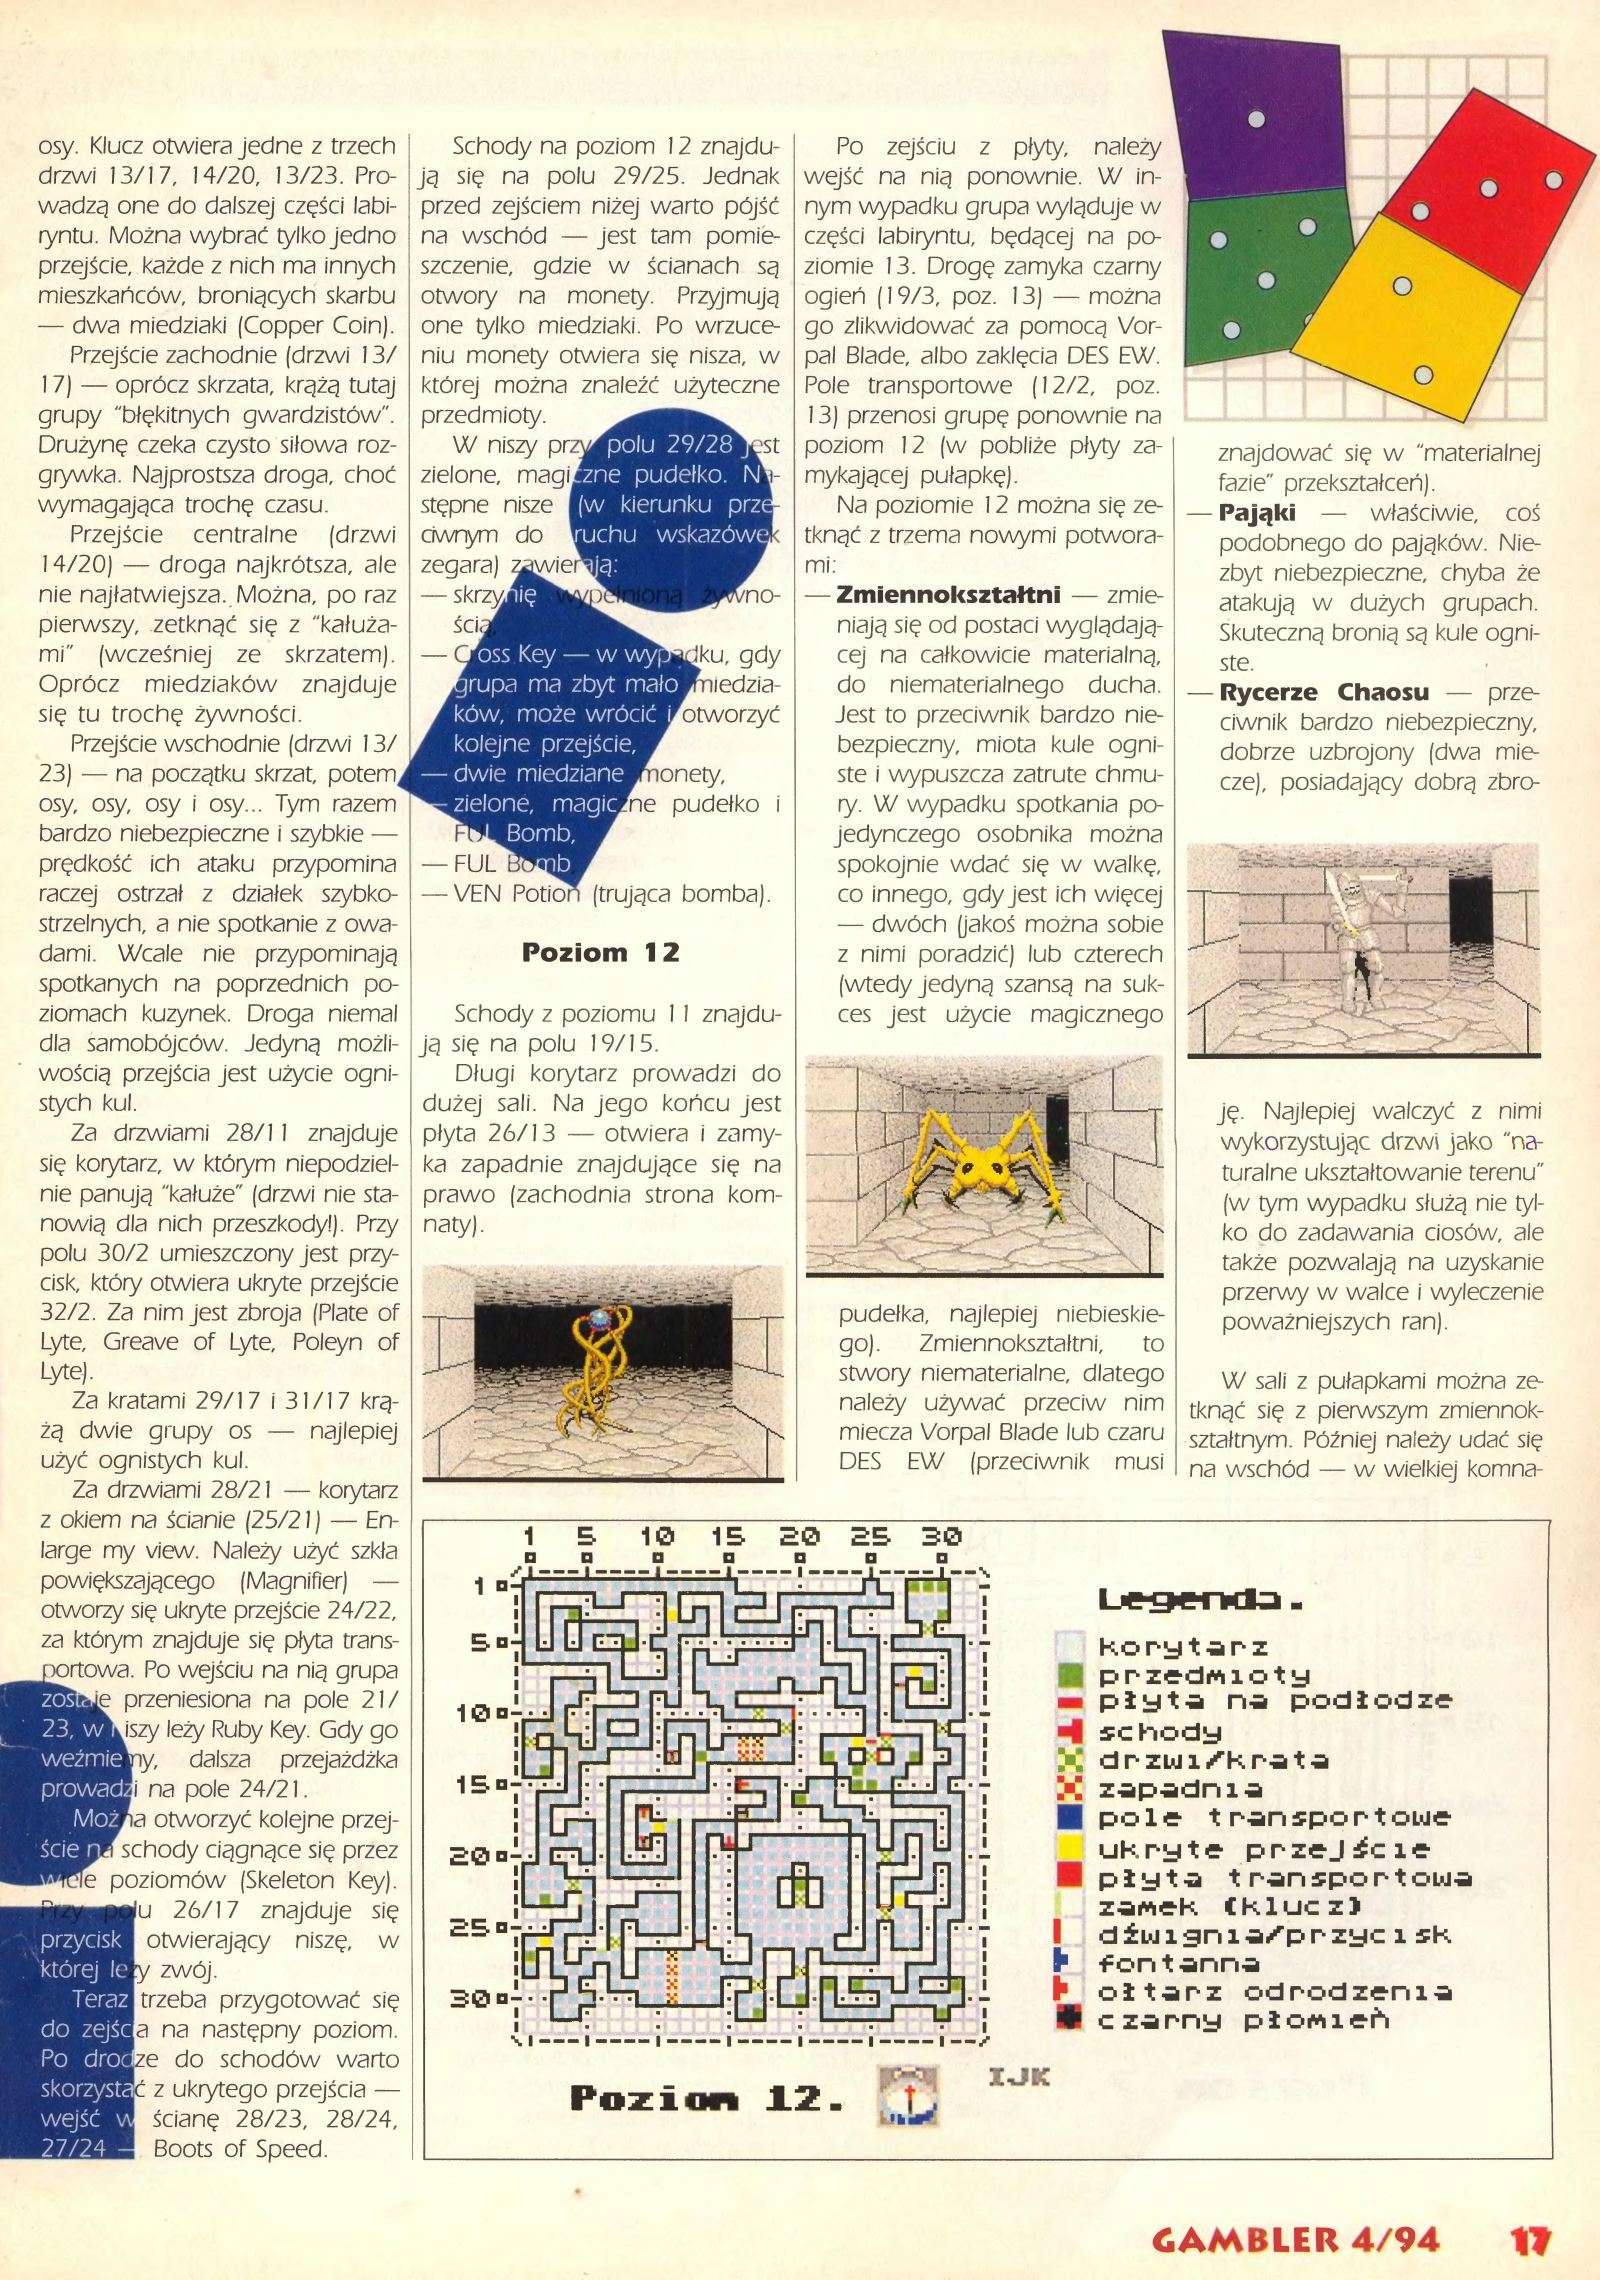 Dungeon Master Guide published in Polish magazine 'Gambler', April 1994, Page 17